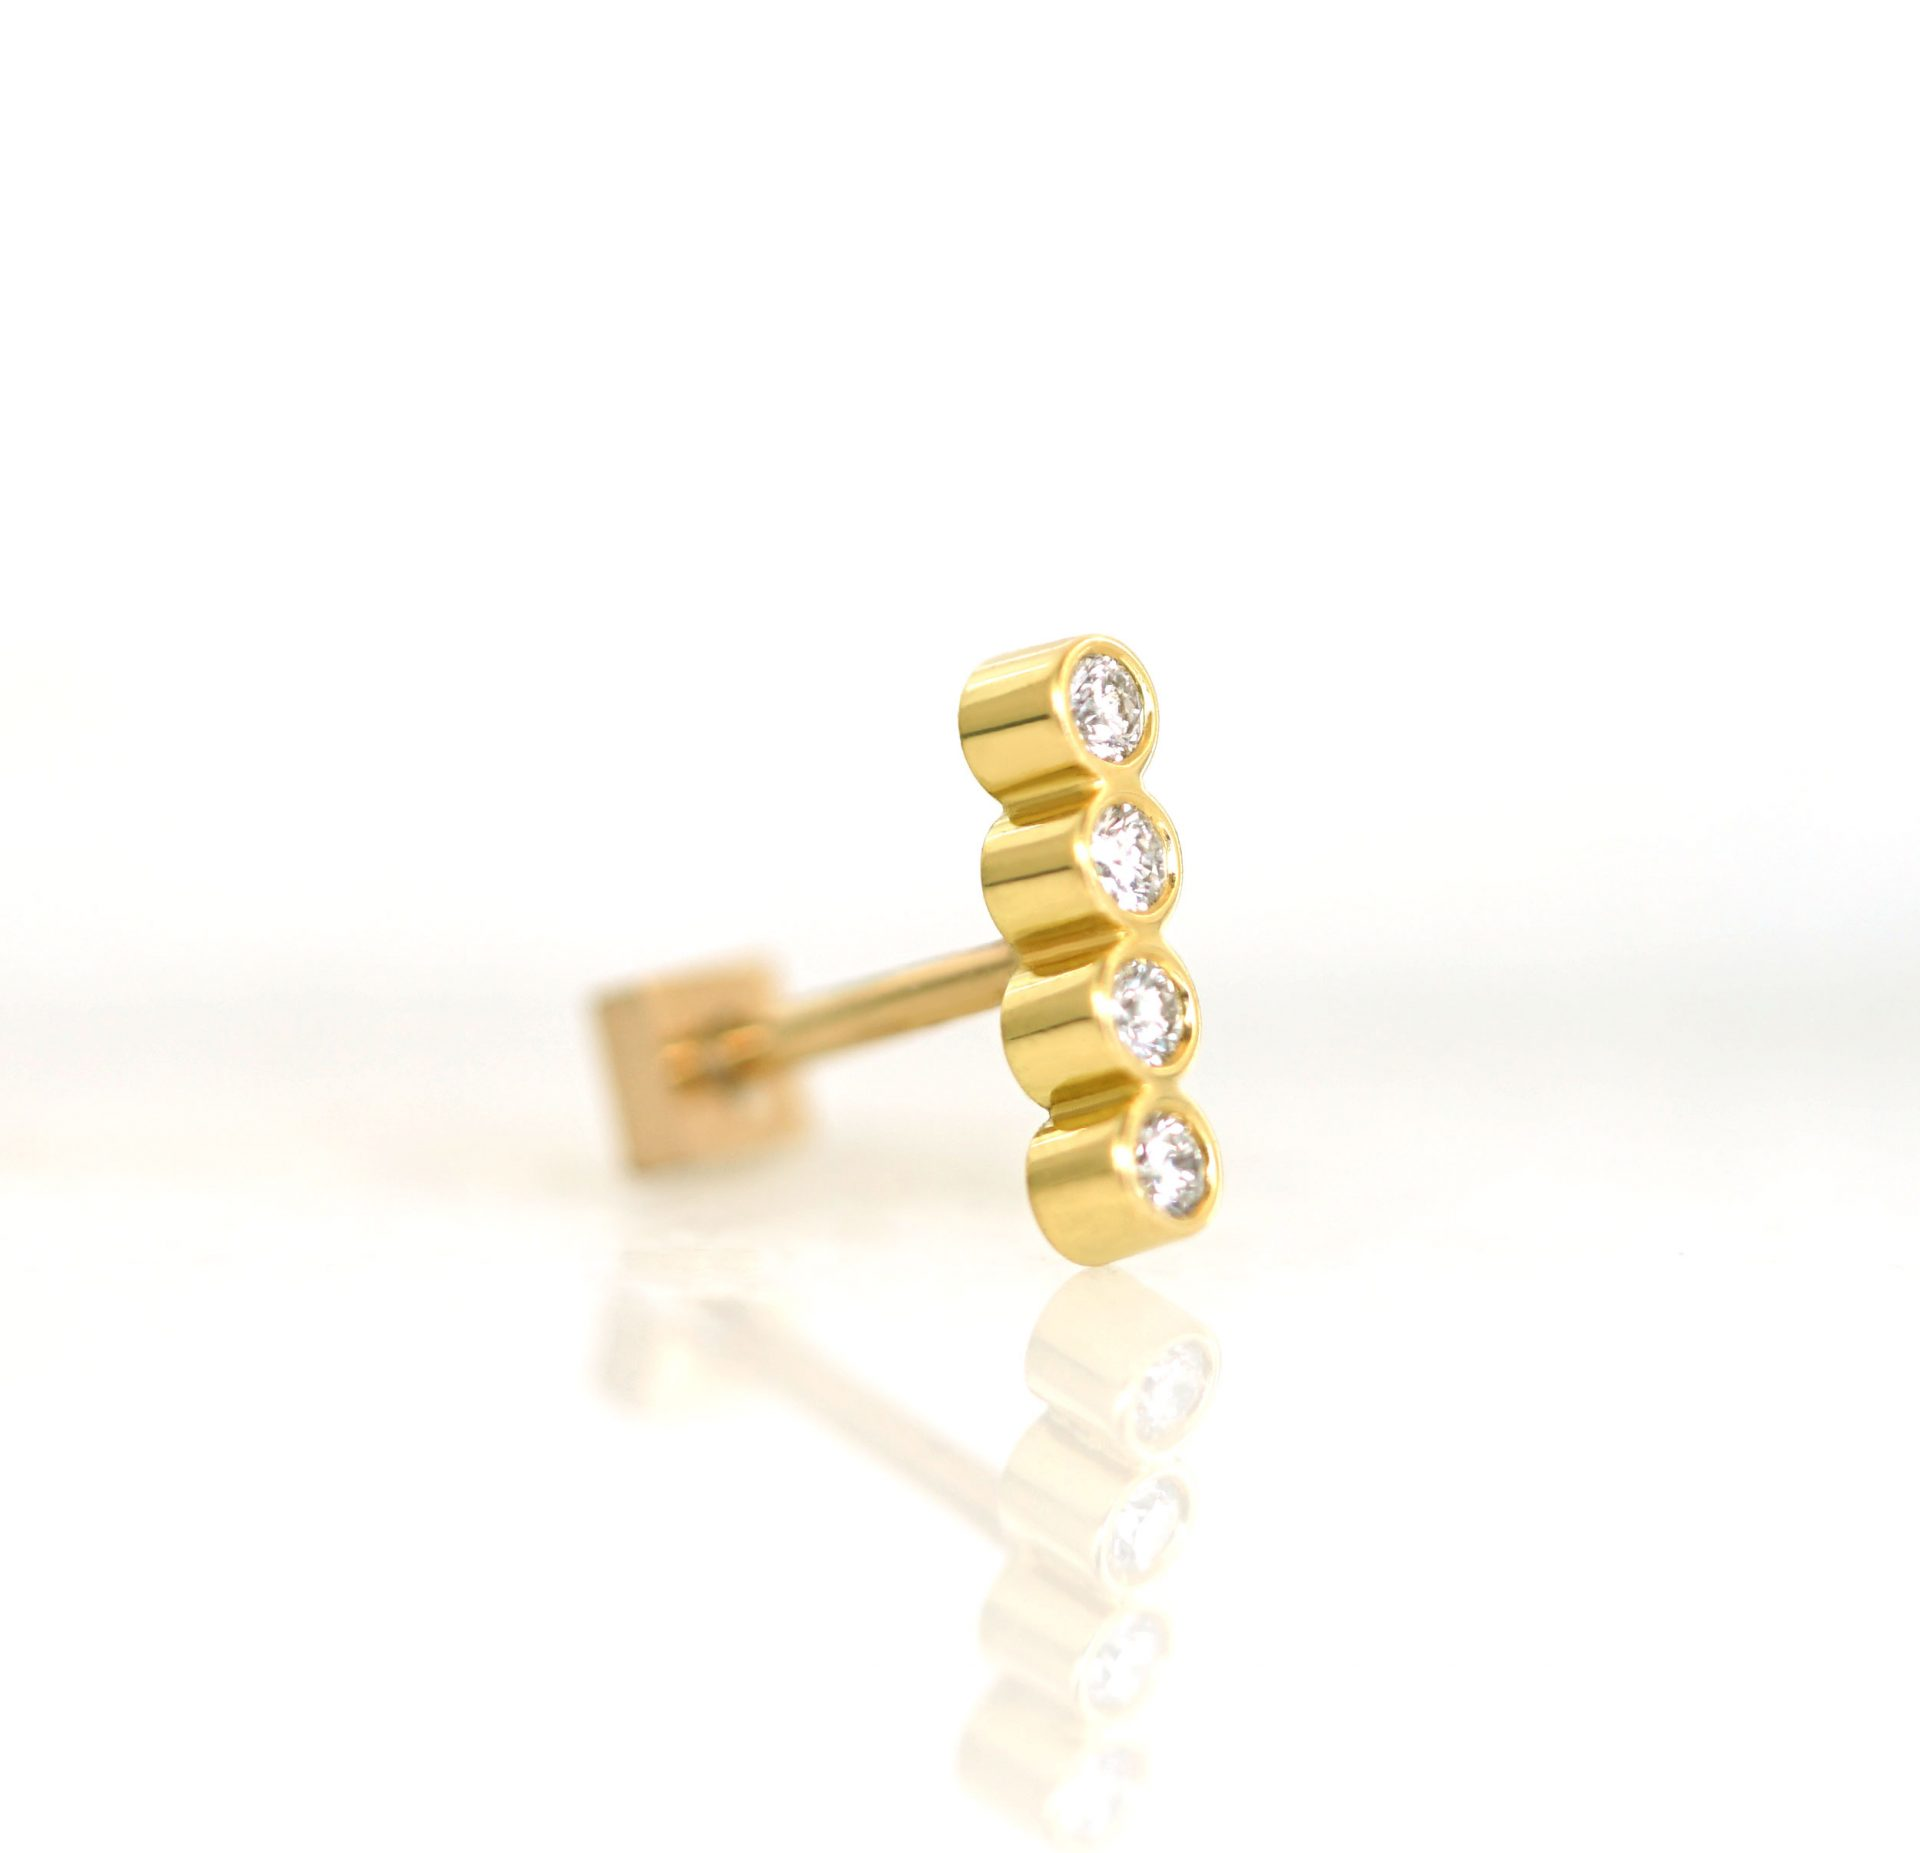 18k-solid-gold-natural-diamond-cartilage-piercing-earring-studs-lena-cohen-london